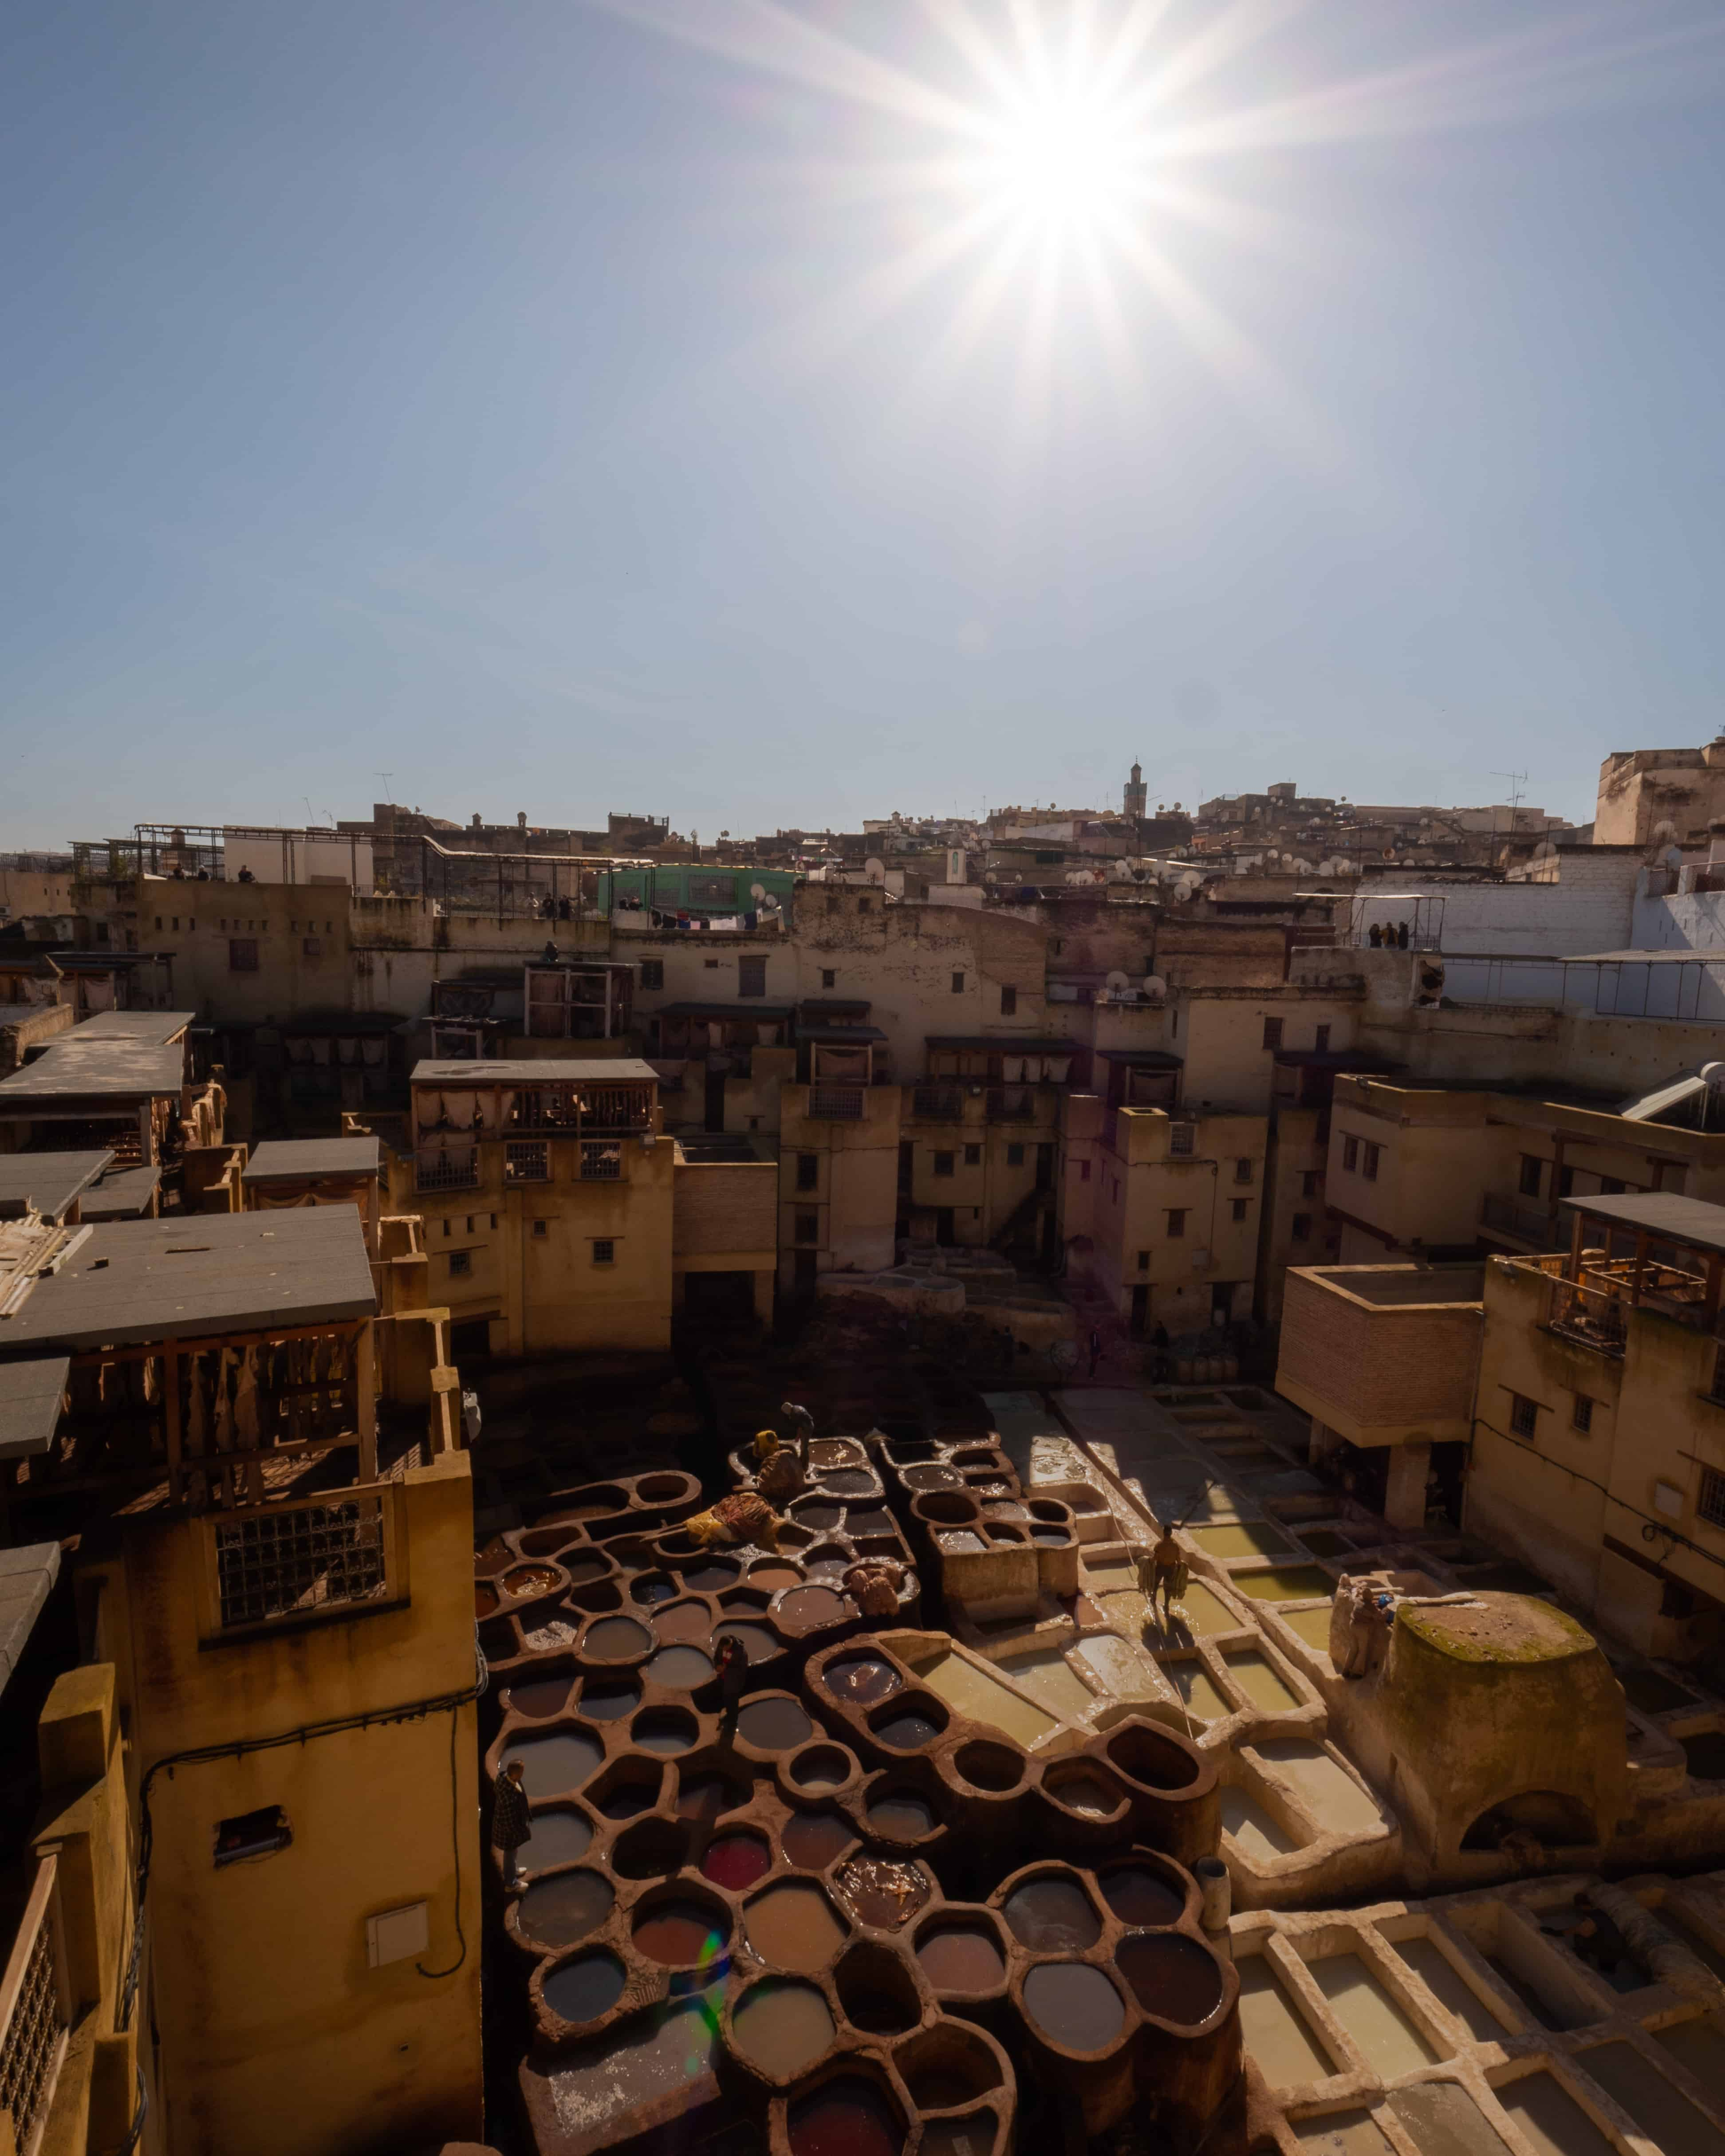 Morocco-Fes-chouara-tannery-best-photography-spots